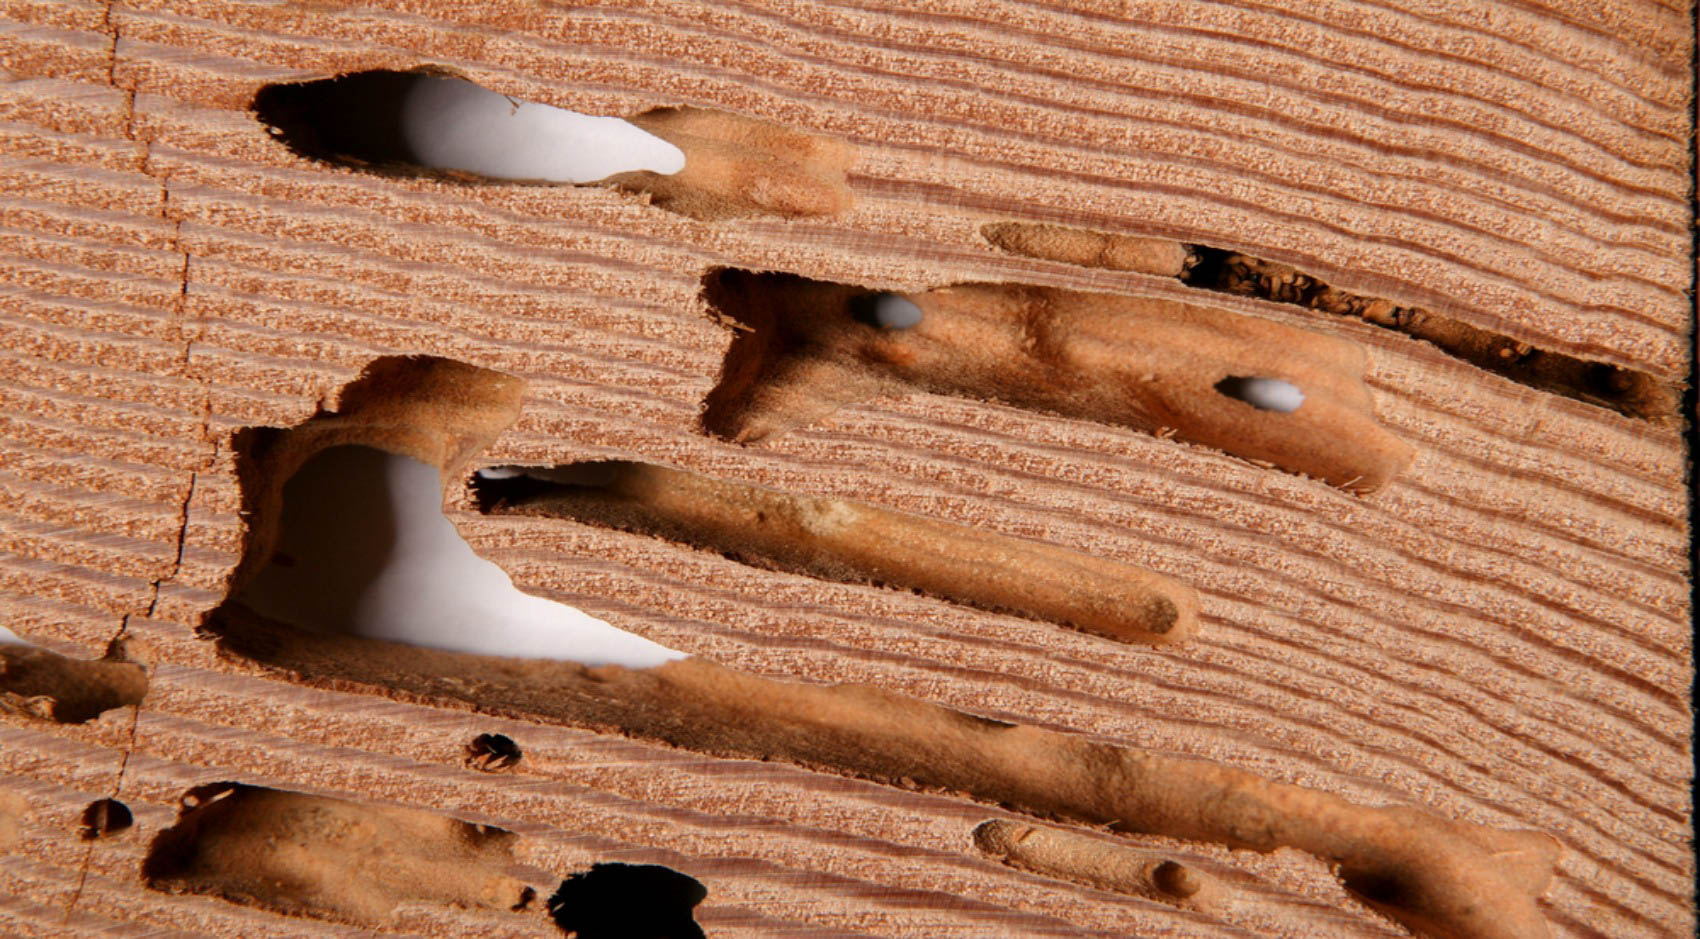 Wood with termite damage